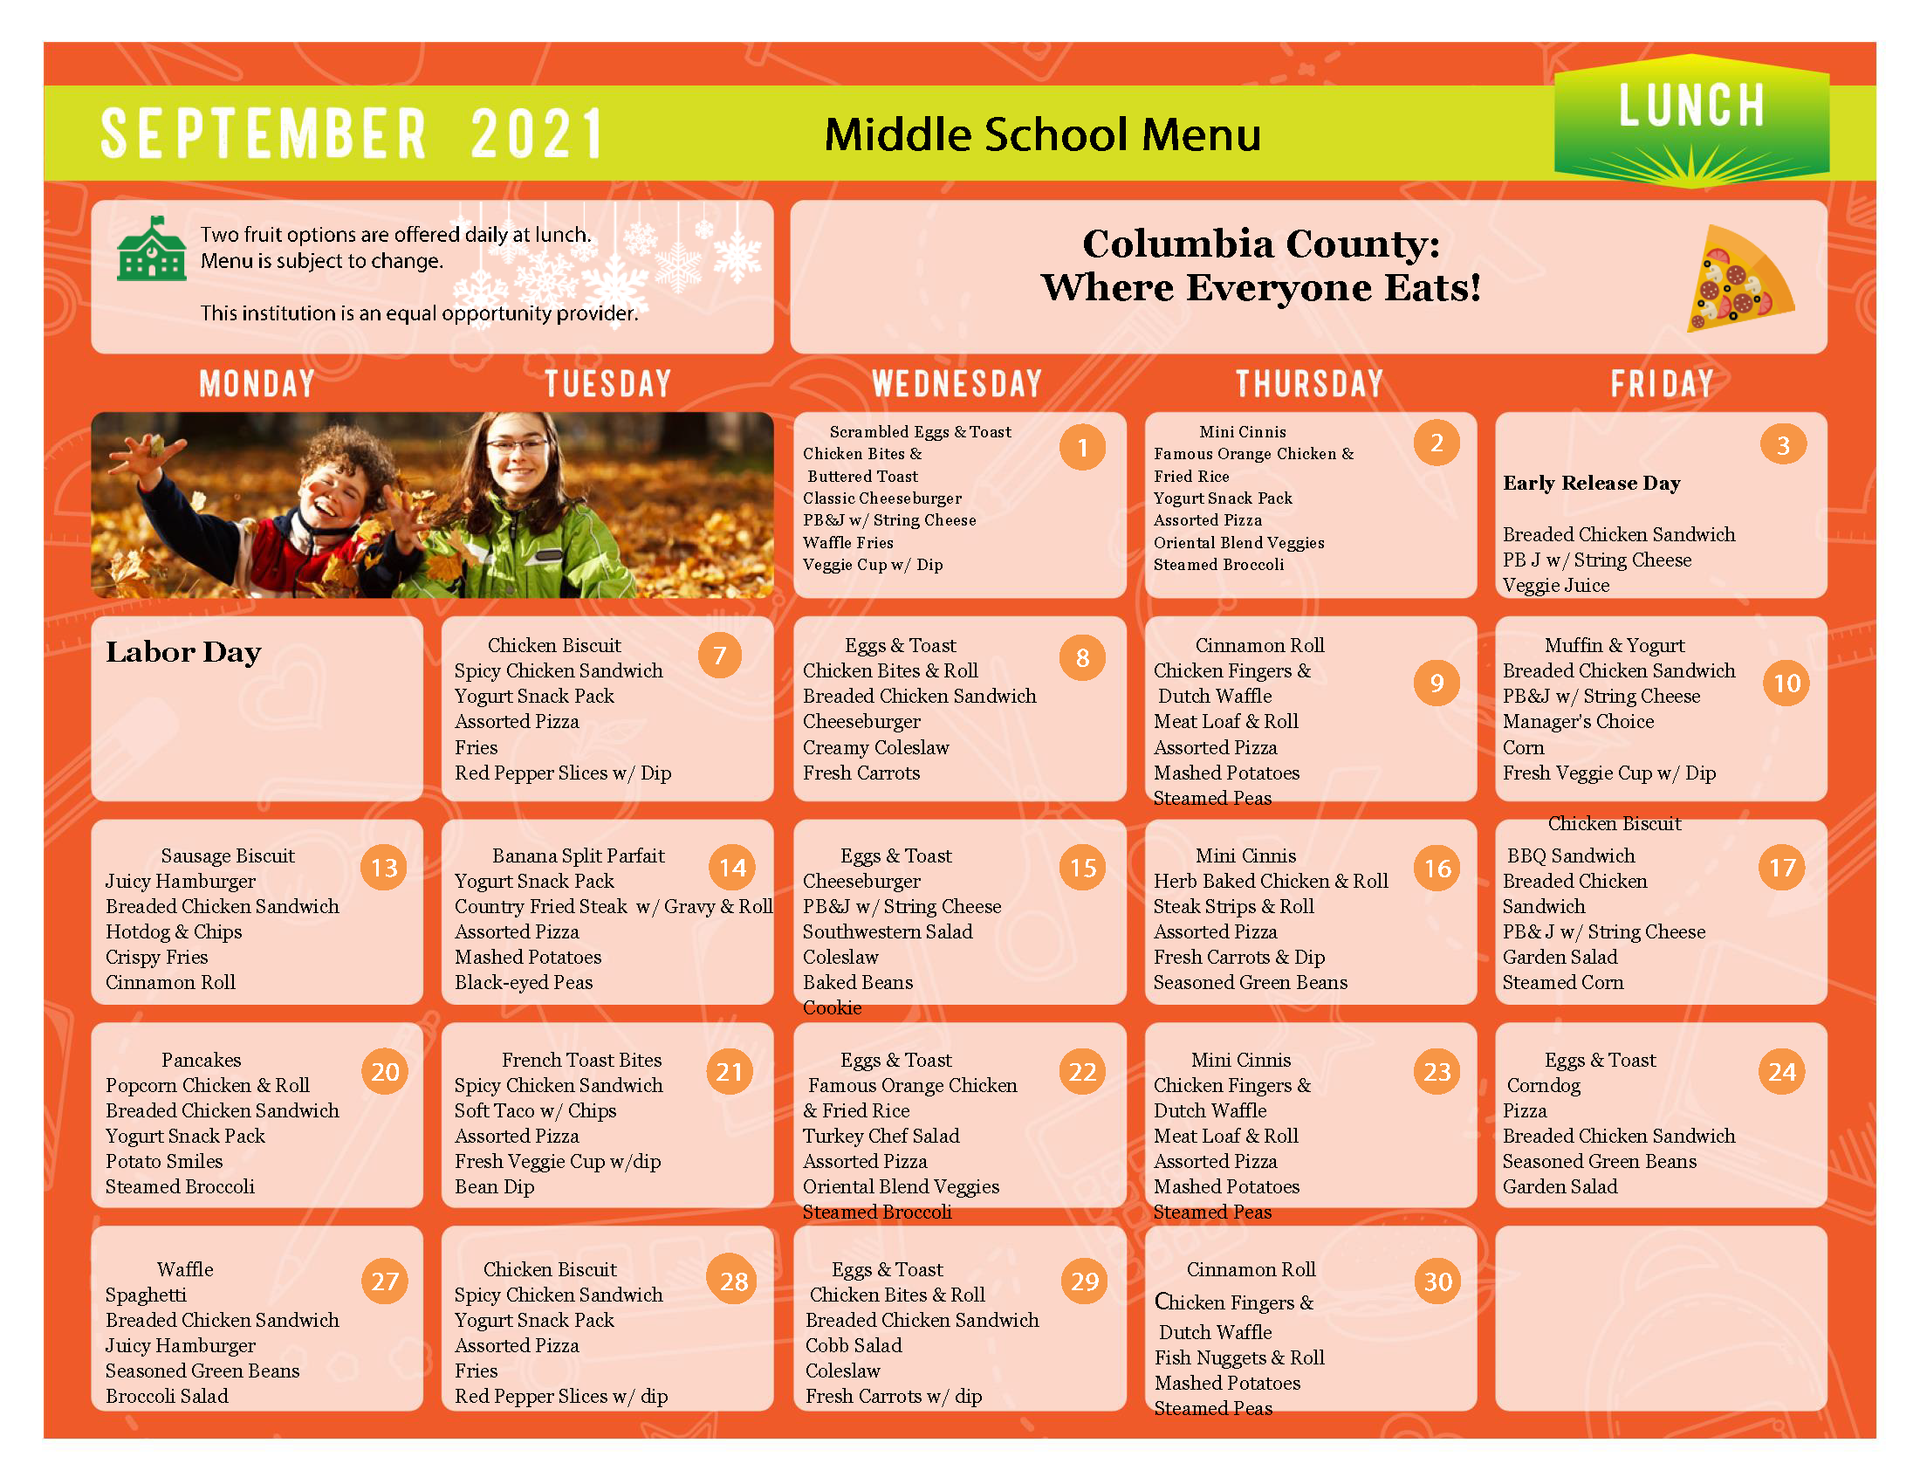 Middle breakfast and lunch menu